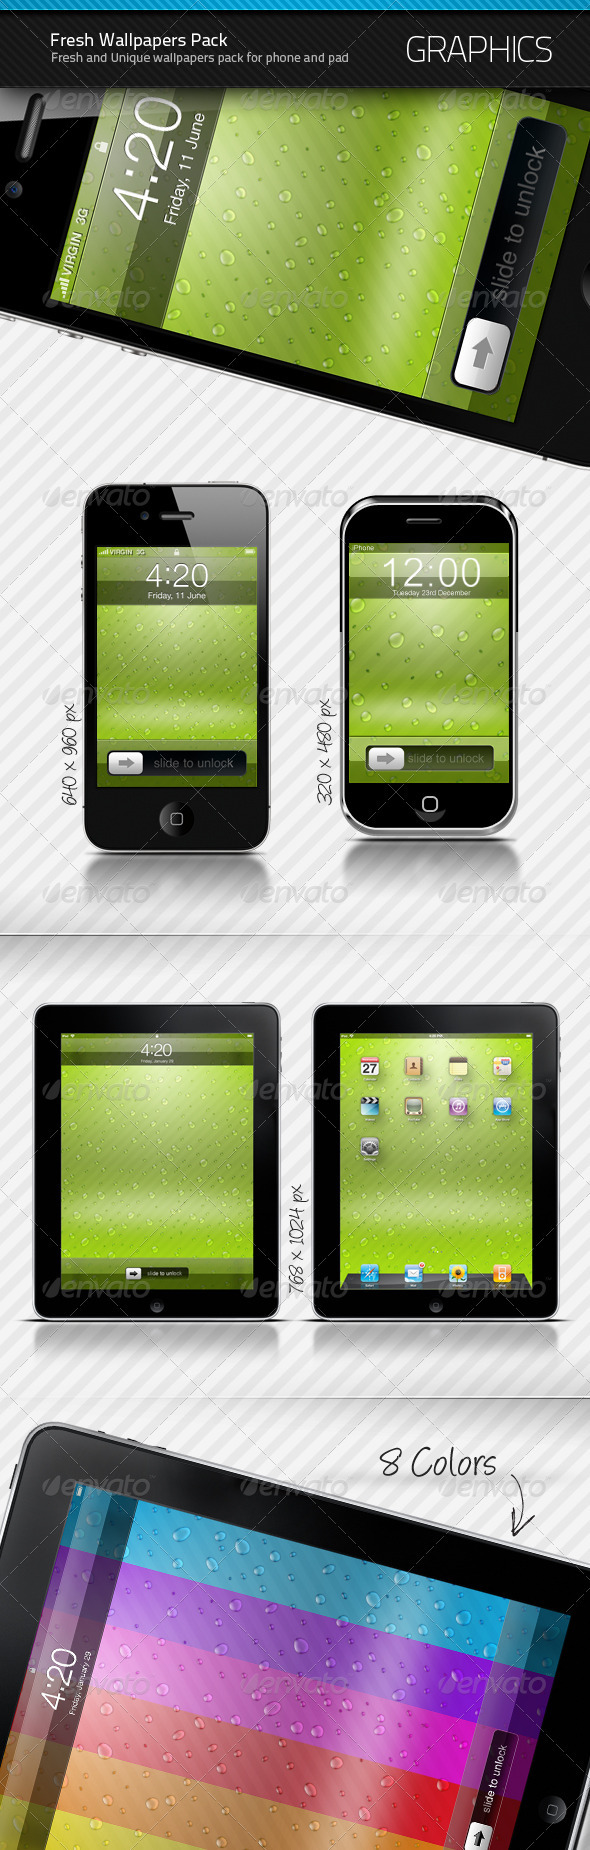 Phone and Pad Fresh Wallpapers Pack - Backgrounds Graphics